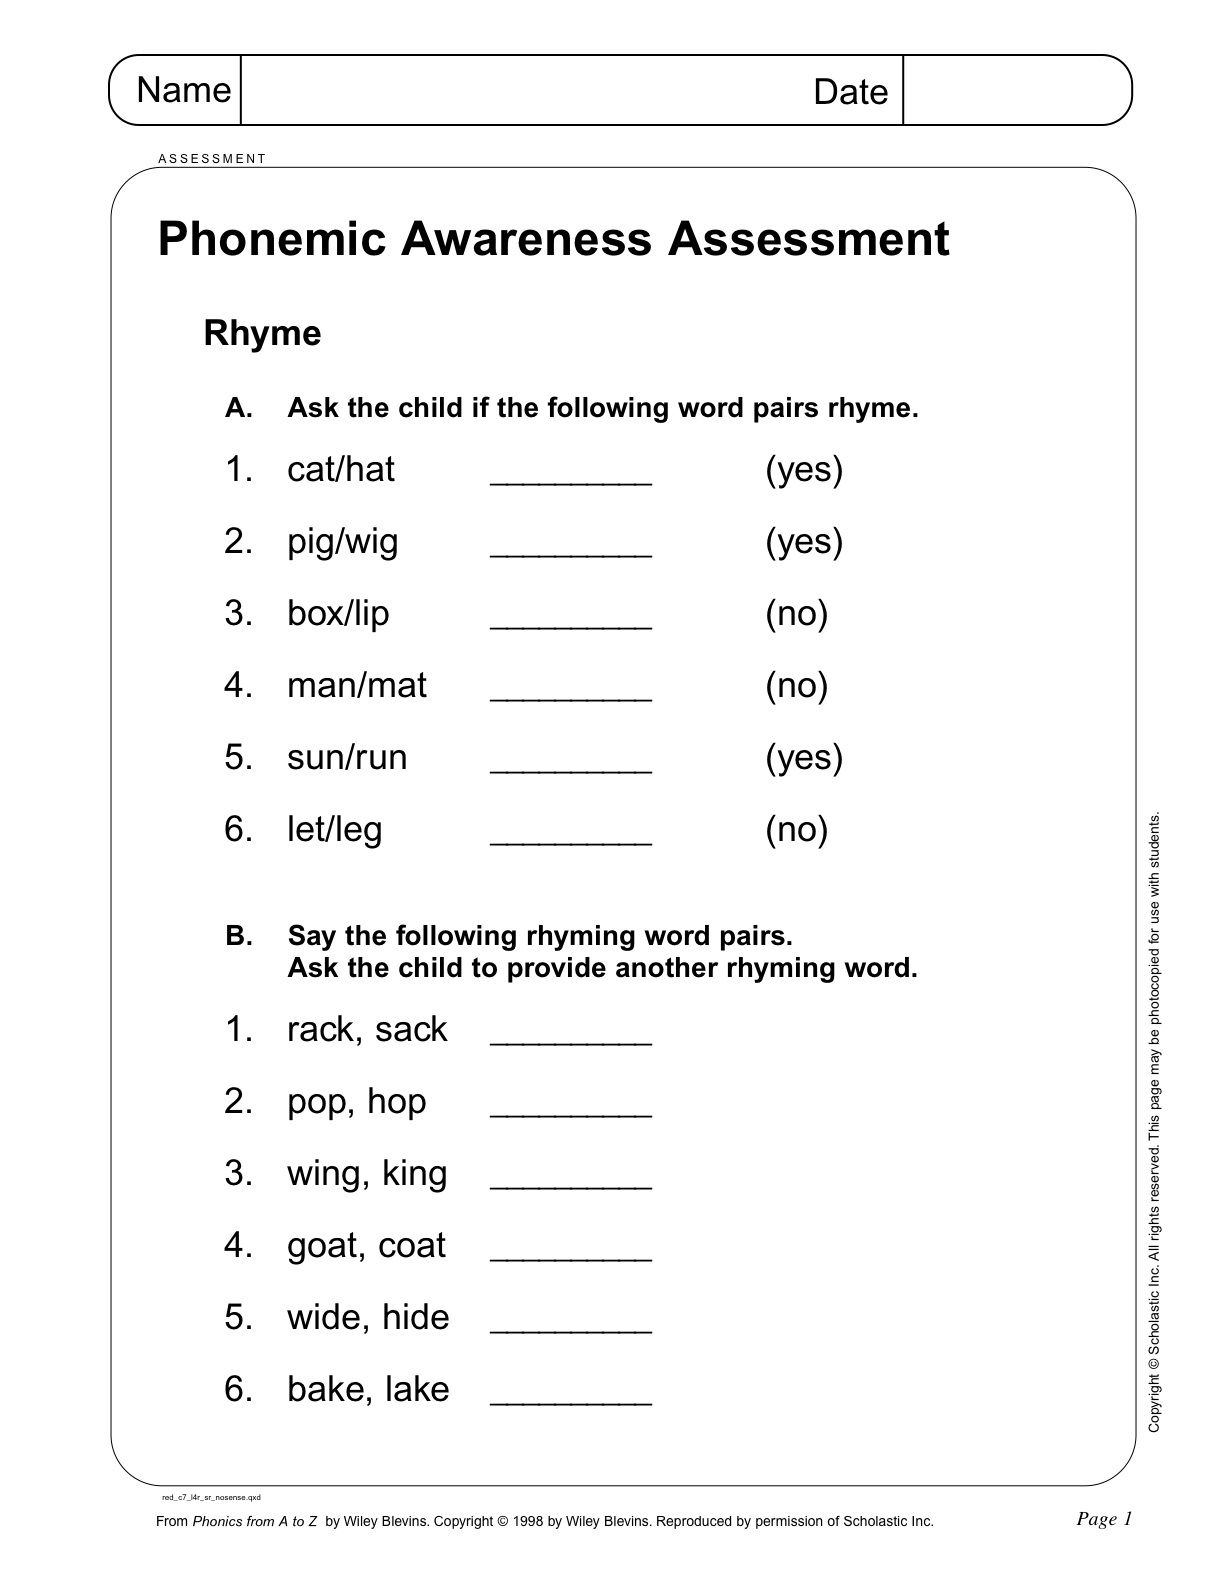 Phonemic Awareness Assessment Page 4 From Scholastic